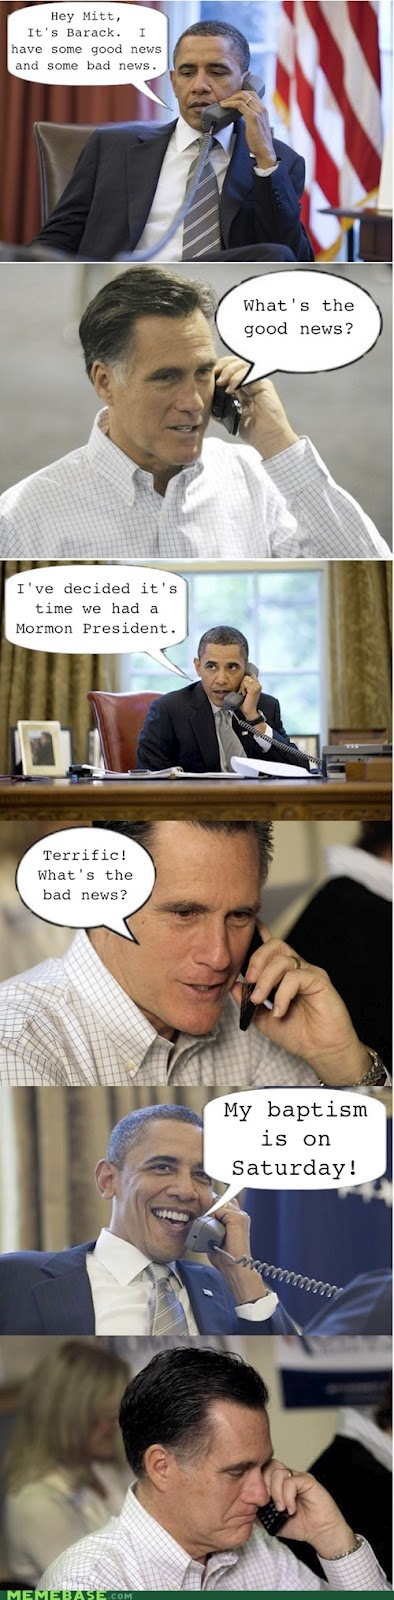 Mormon president - Mitt Romney and Obama - made me laugh  #LDS #funny